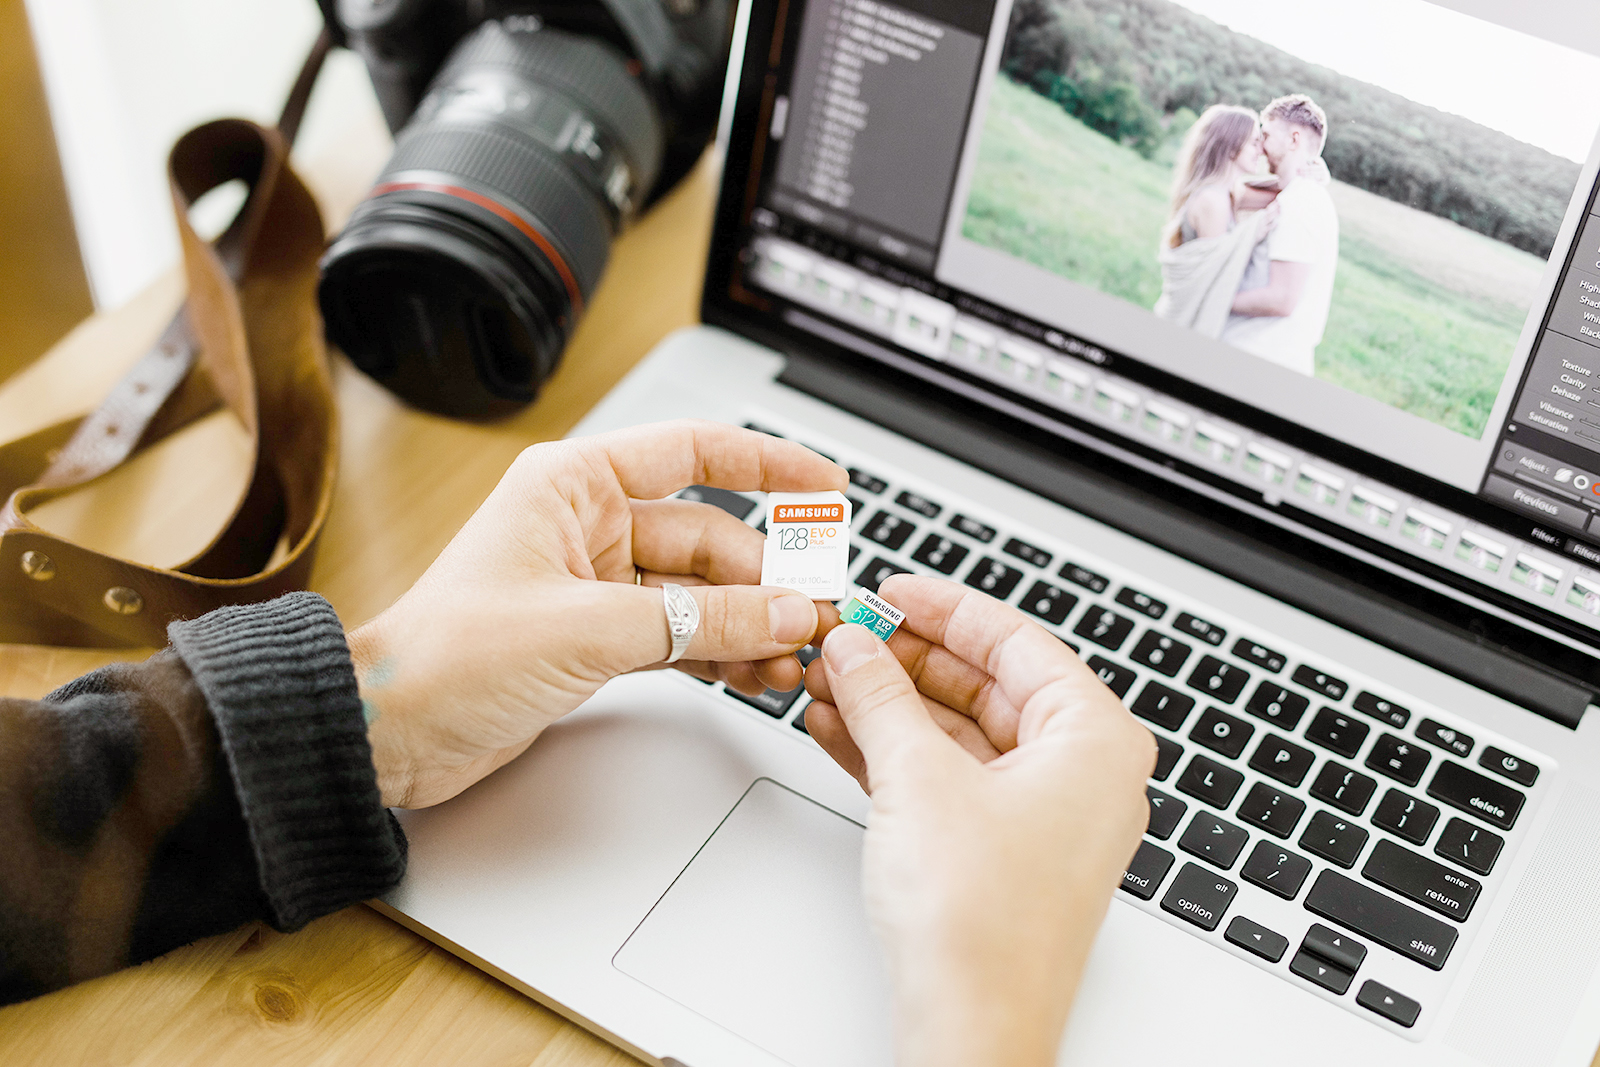 how-to-organize-your-digital-photos-on-your-computer